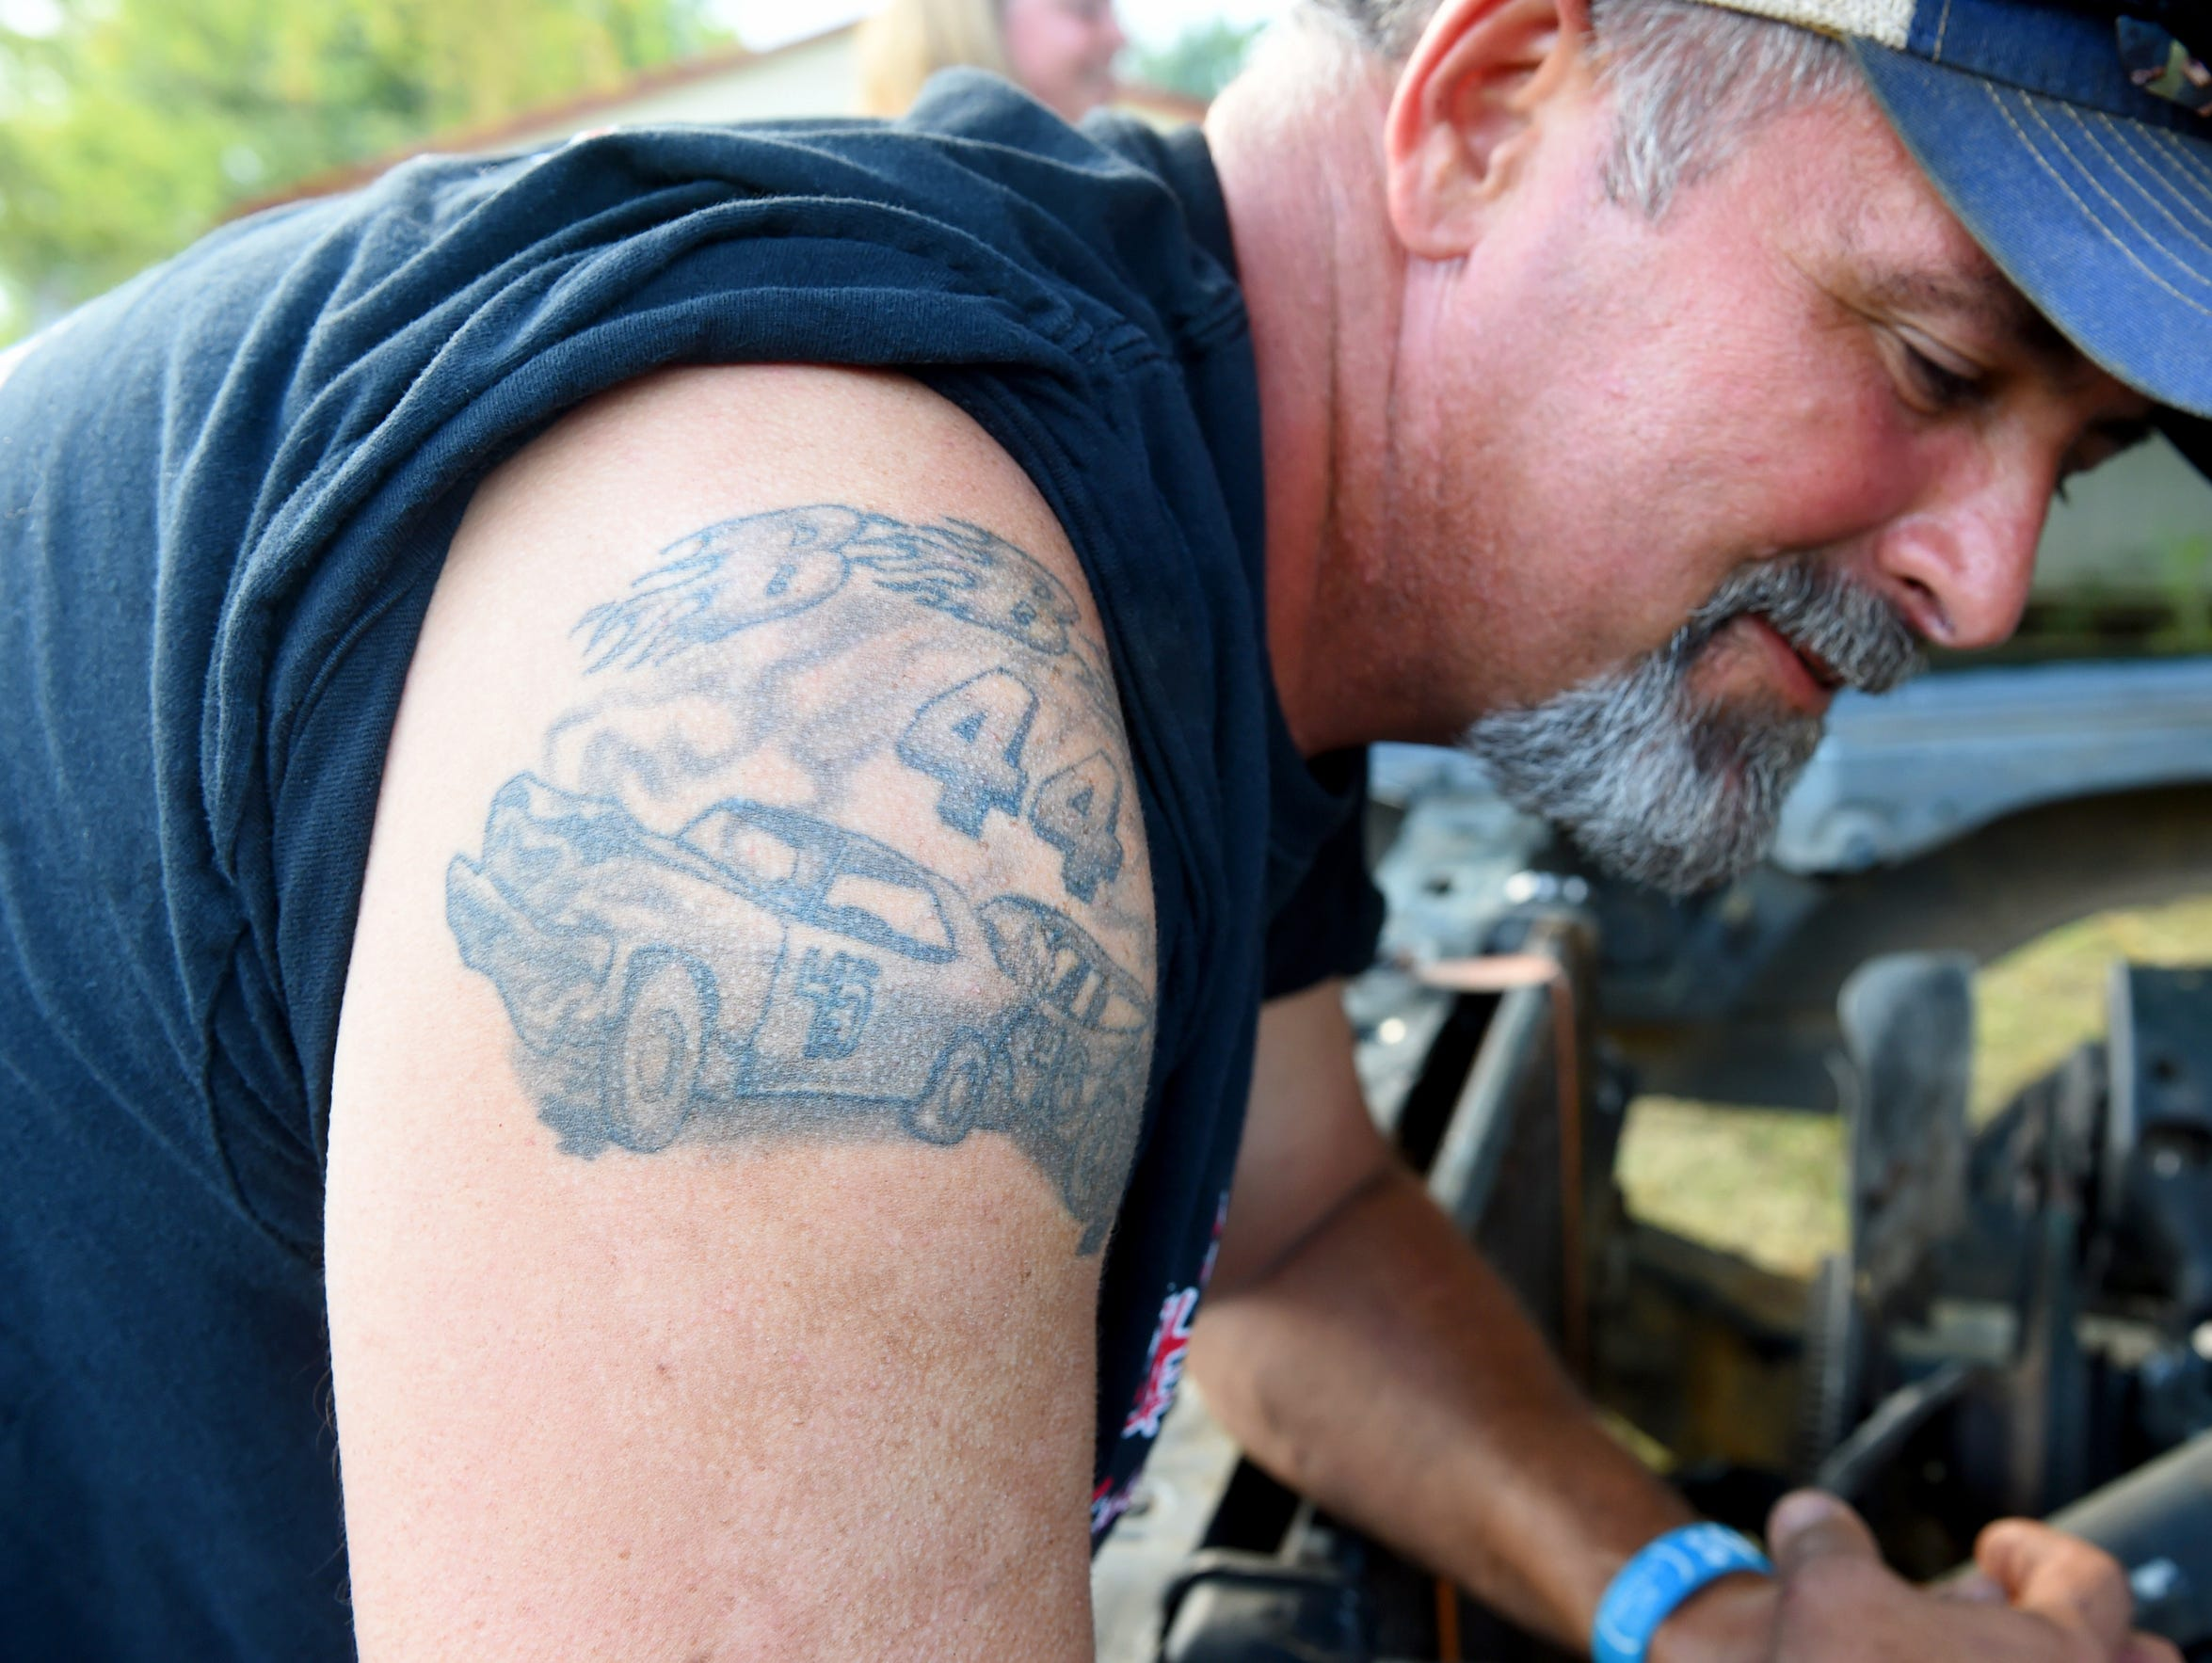 John Breeden has his father's competition number tattooed